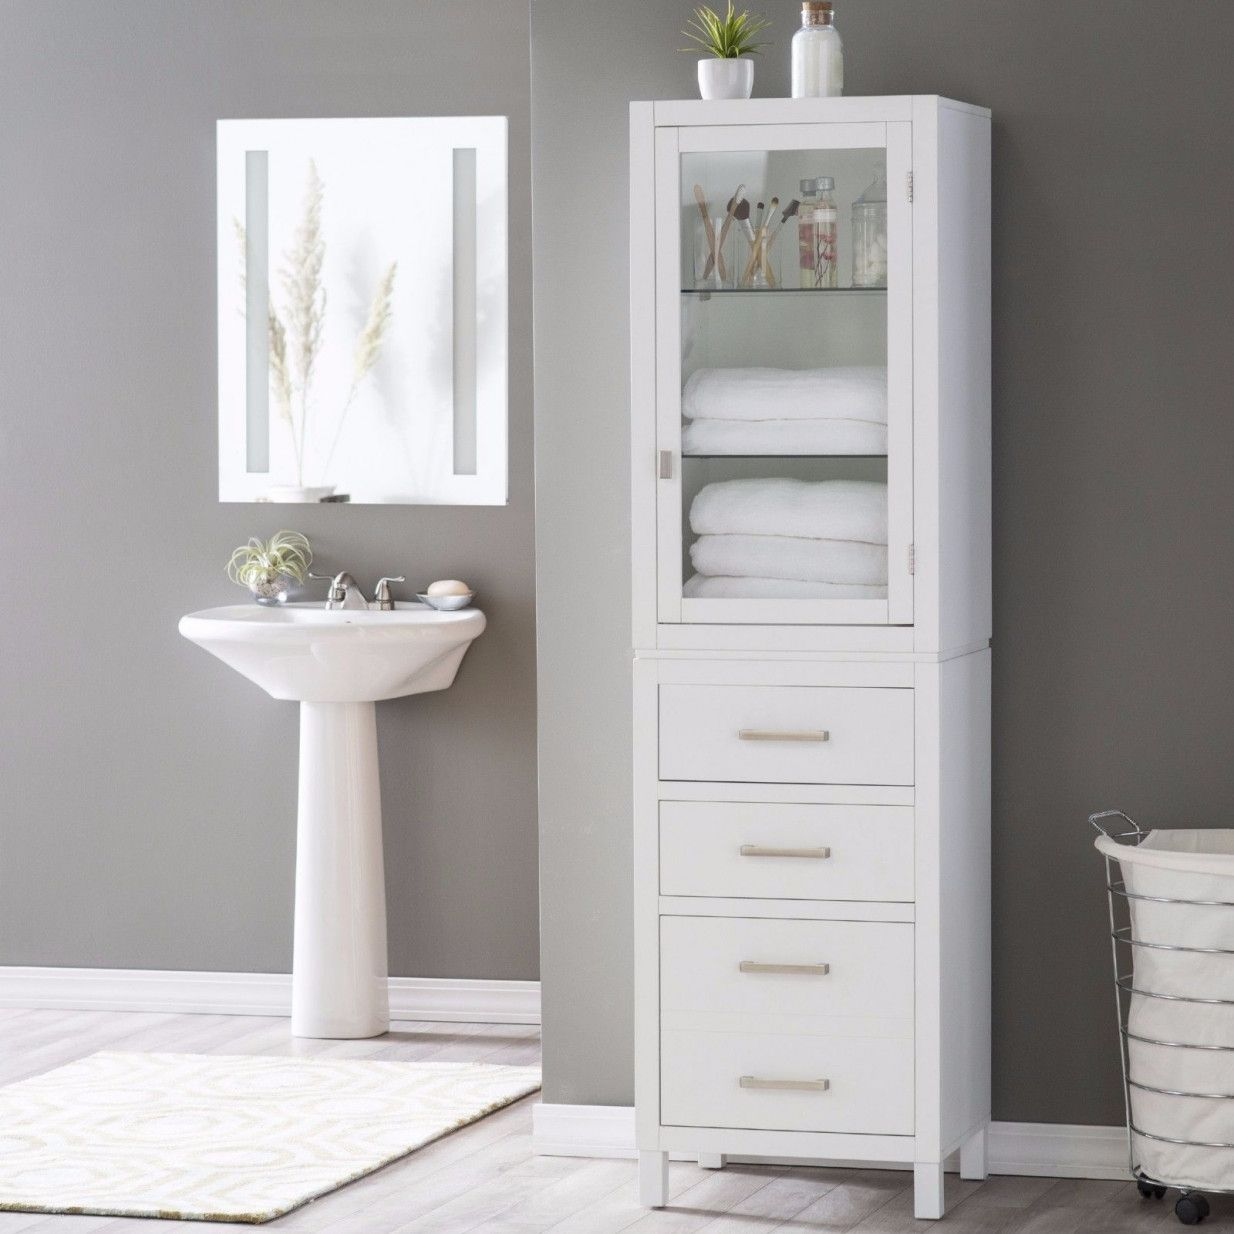 99+ Tall Freestanding Bathroom Cabinet - Interior House Paint Colors ...